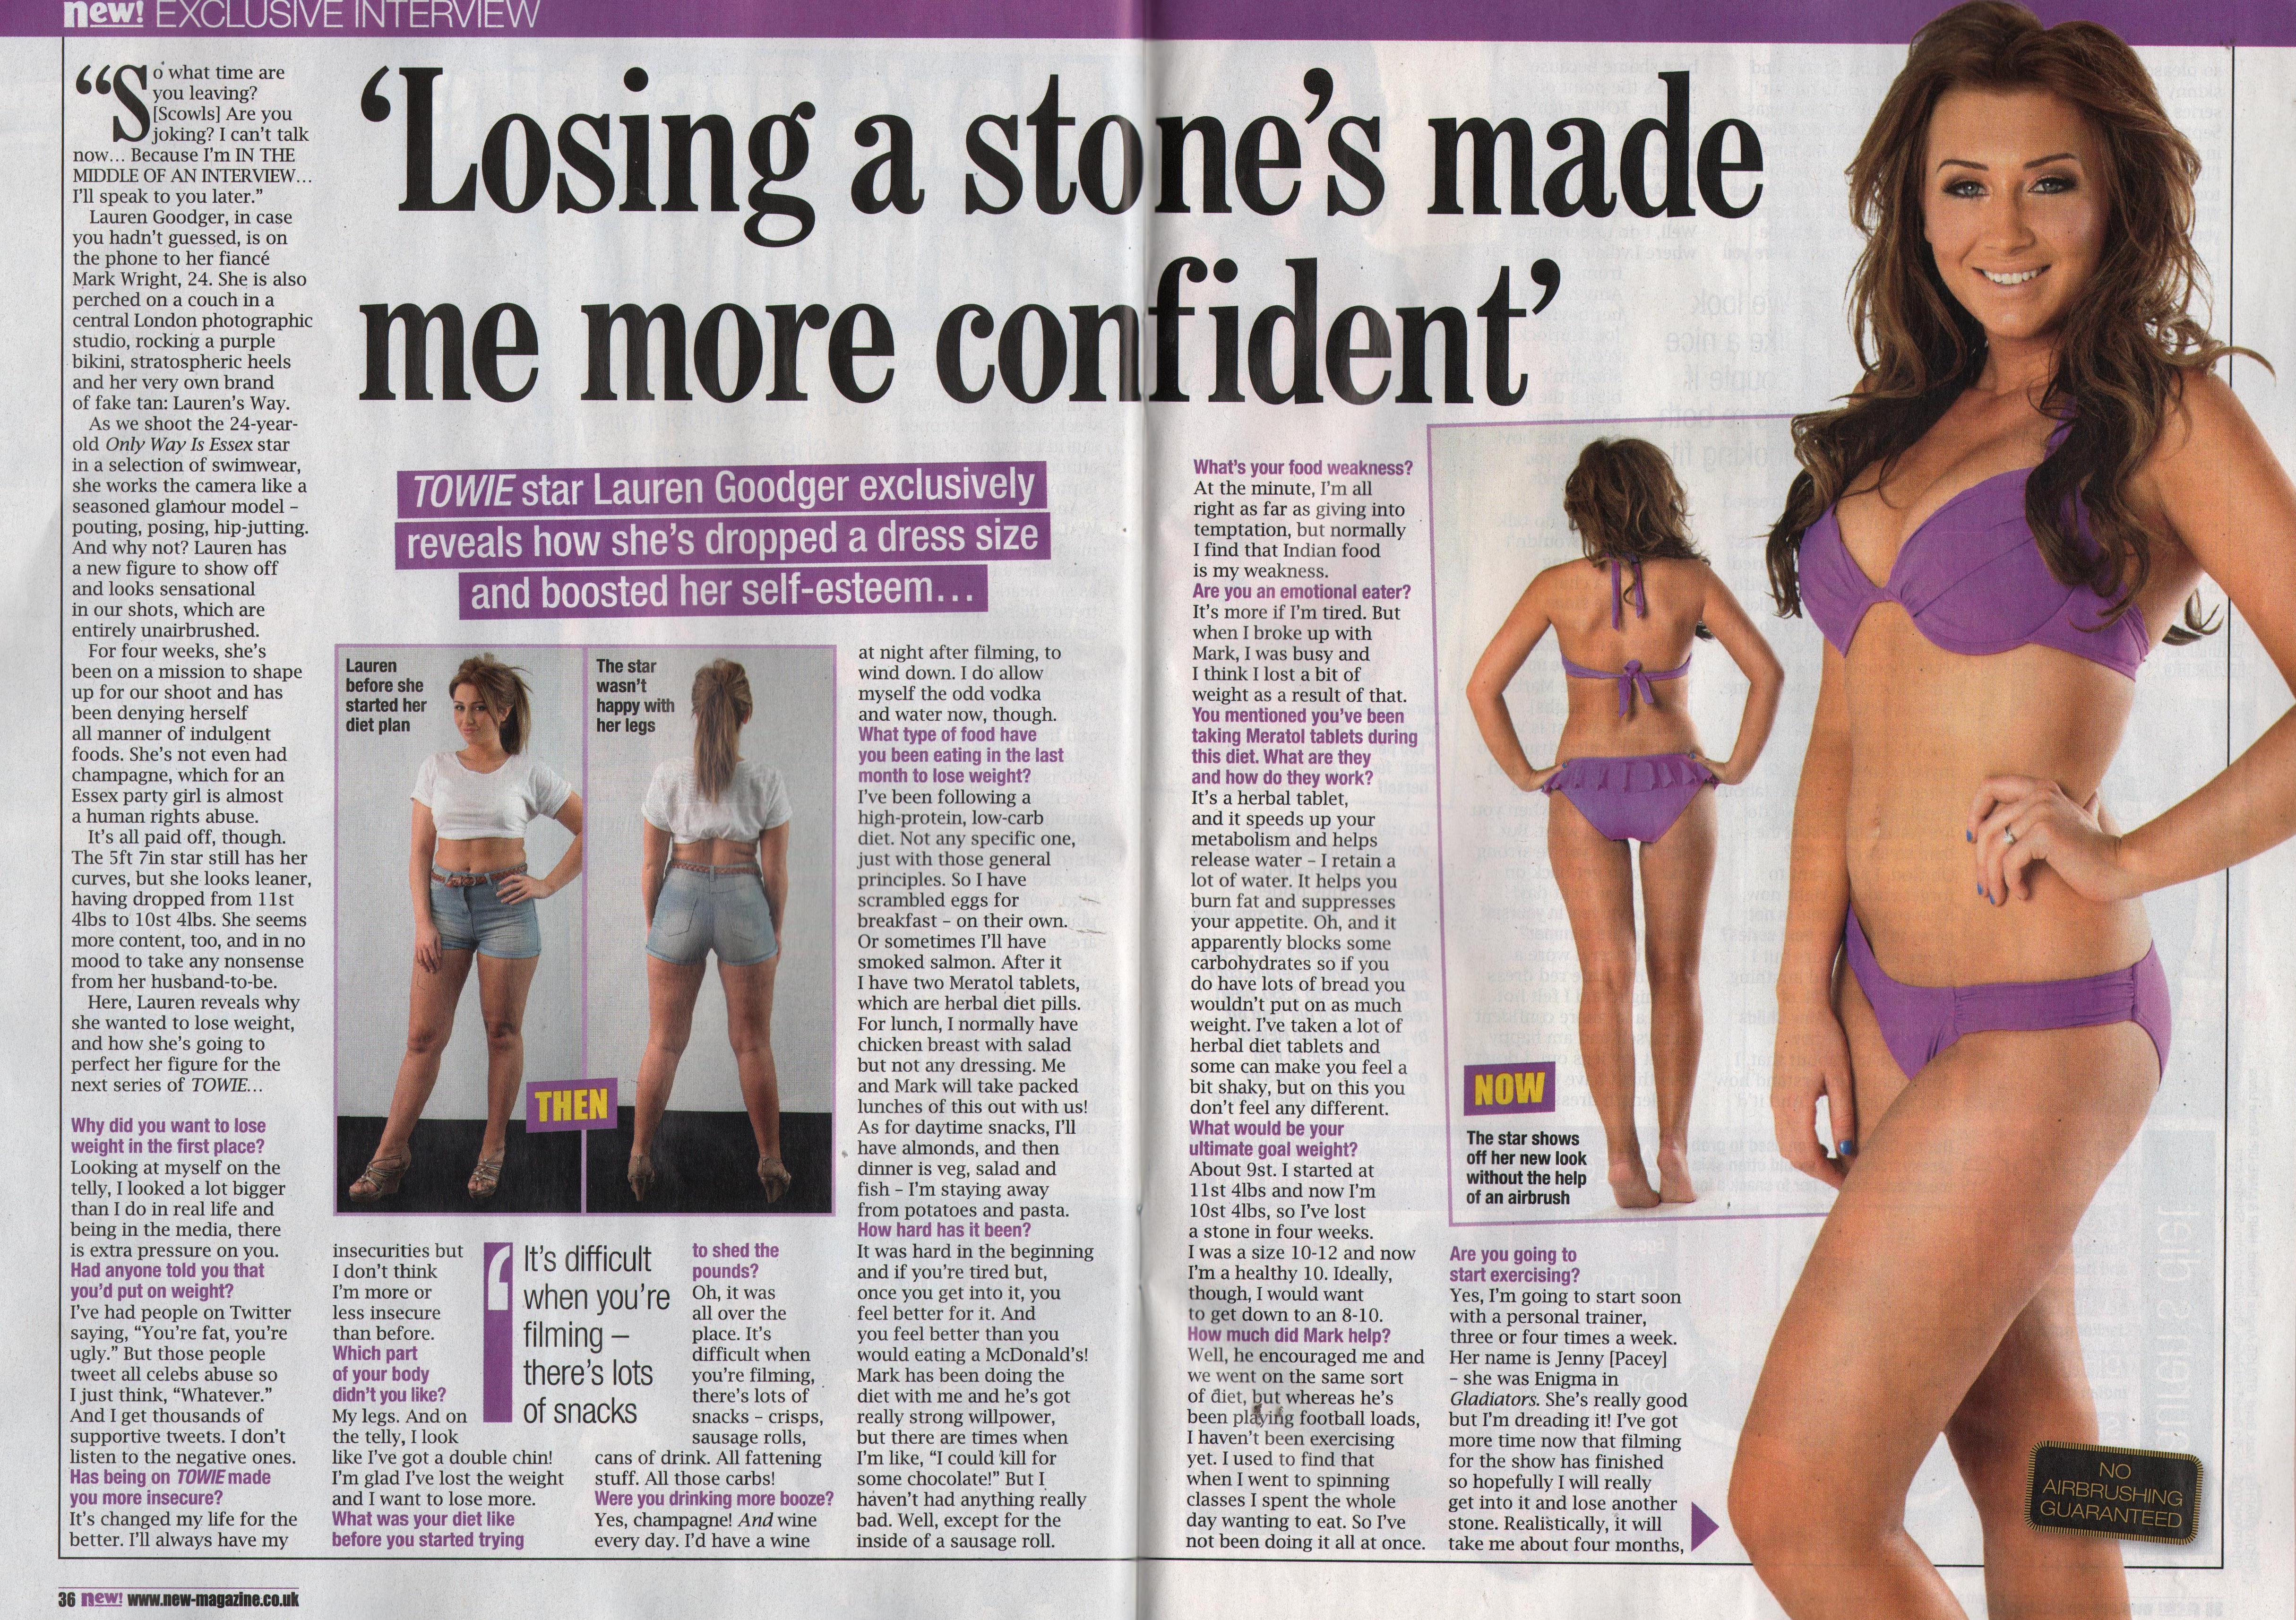 Meratol Weight Loss Pills Success Story Lauren Goodger